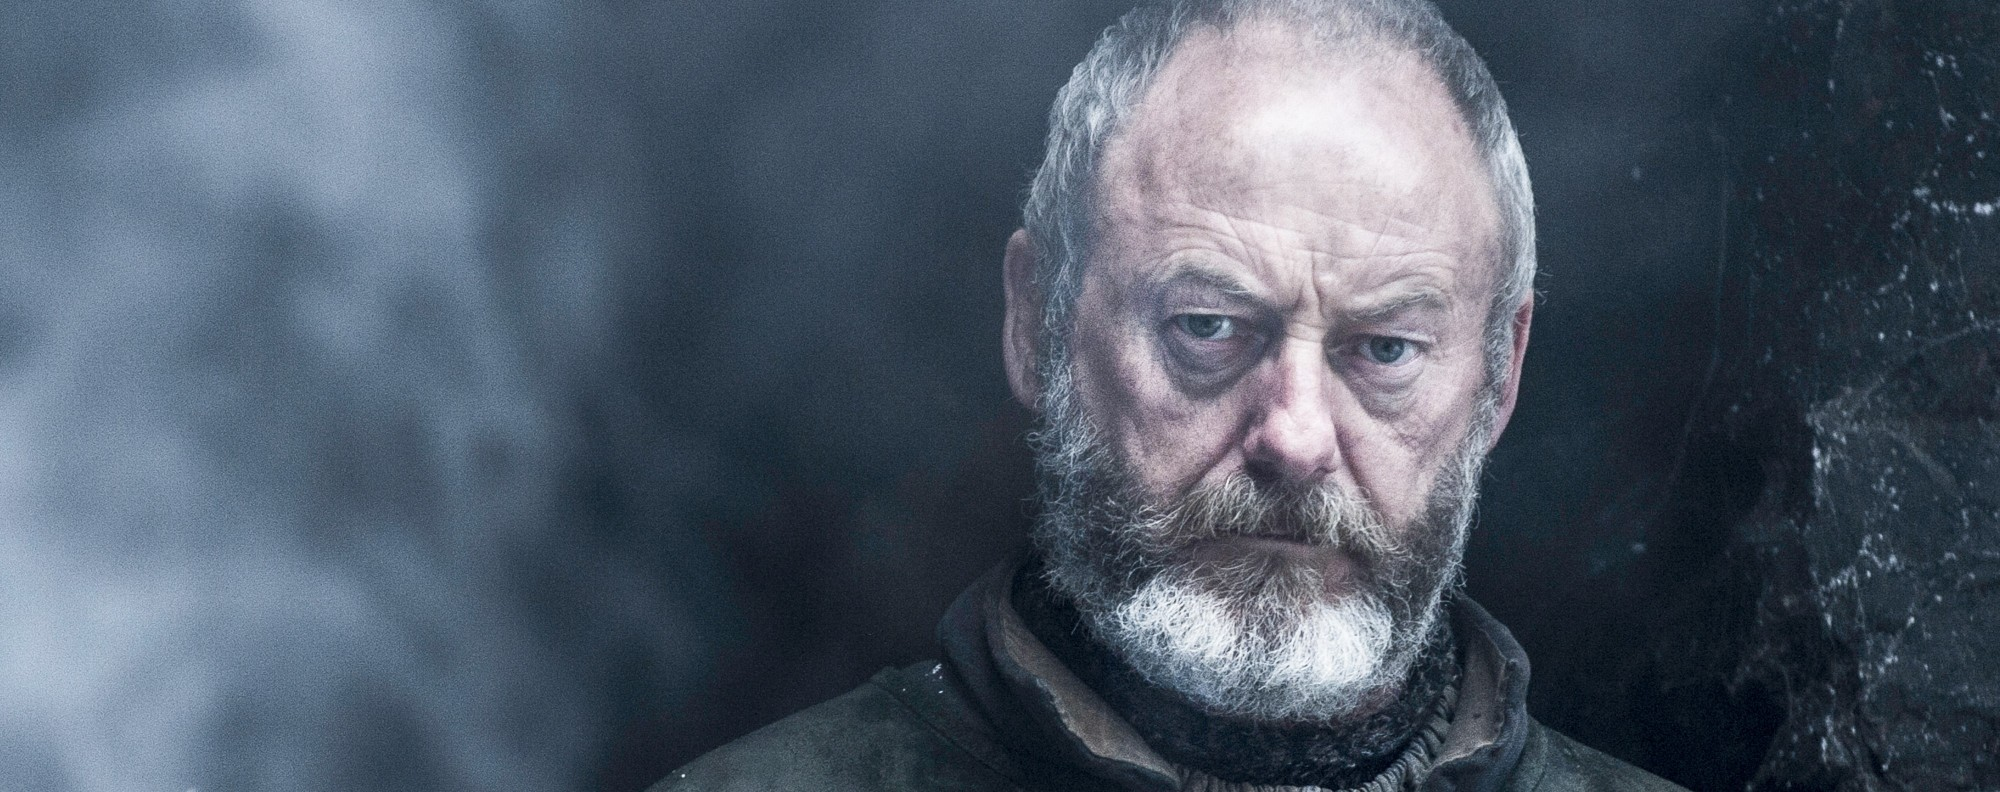 Why Game of Thrones' Liam Cunningham doesn't want to be